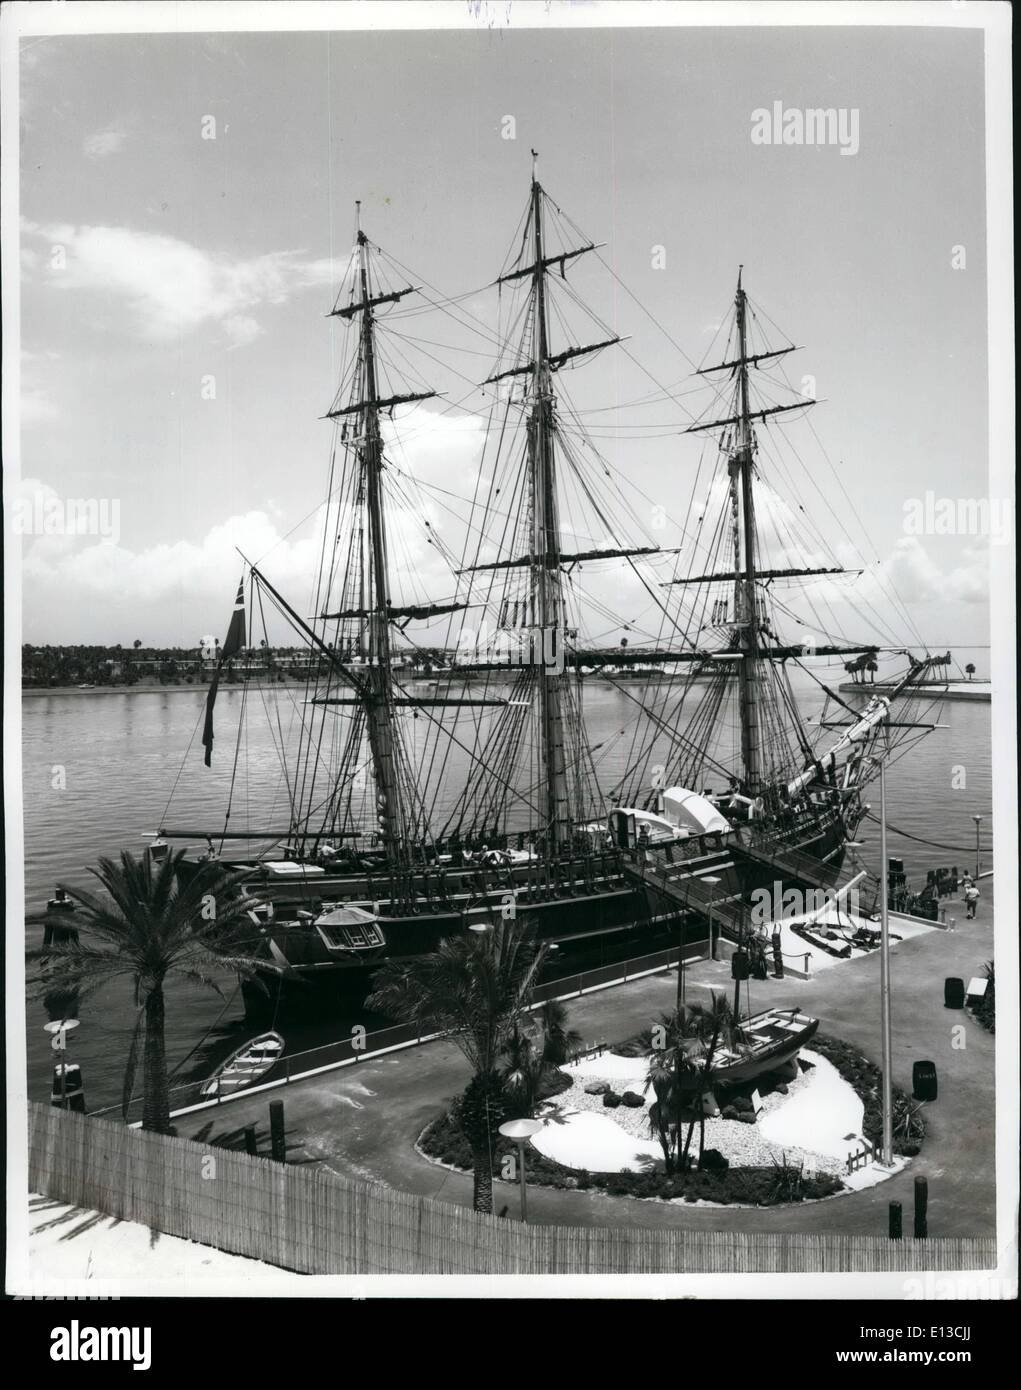 Feb. 29, 2012 - The Bounty, famed ship used in the Metro Goldwyn-Mayer movie, is now on permanent exhibits at St. Petersburg, Florida. To keep the exact replica of the original 18th century vessel shape master craftsman Clarence Carlson is constantly busy doing repair work. He has recently replaced the tall center mast, hand tooled from a Douglas fir weighing seven tons and ten times older than the original Bounty. Whittling the giant tree down to size required expert craftsmenship. - Stock Image